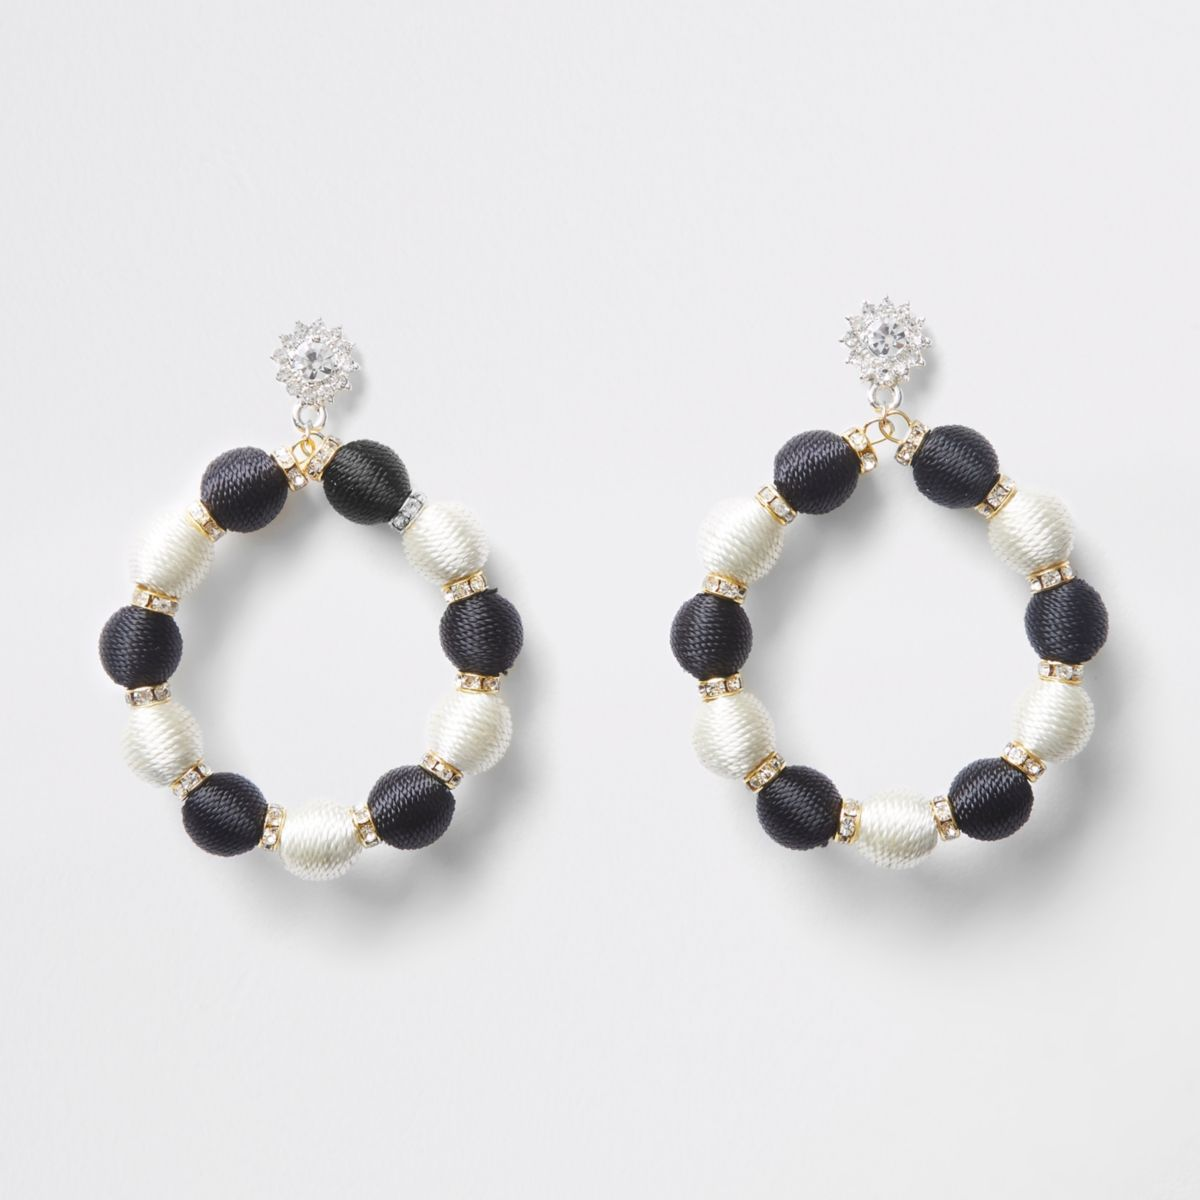 Black mono bead rhinestone hoop drop earrings